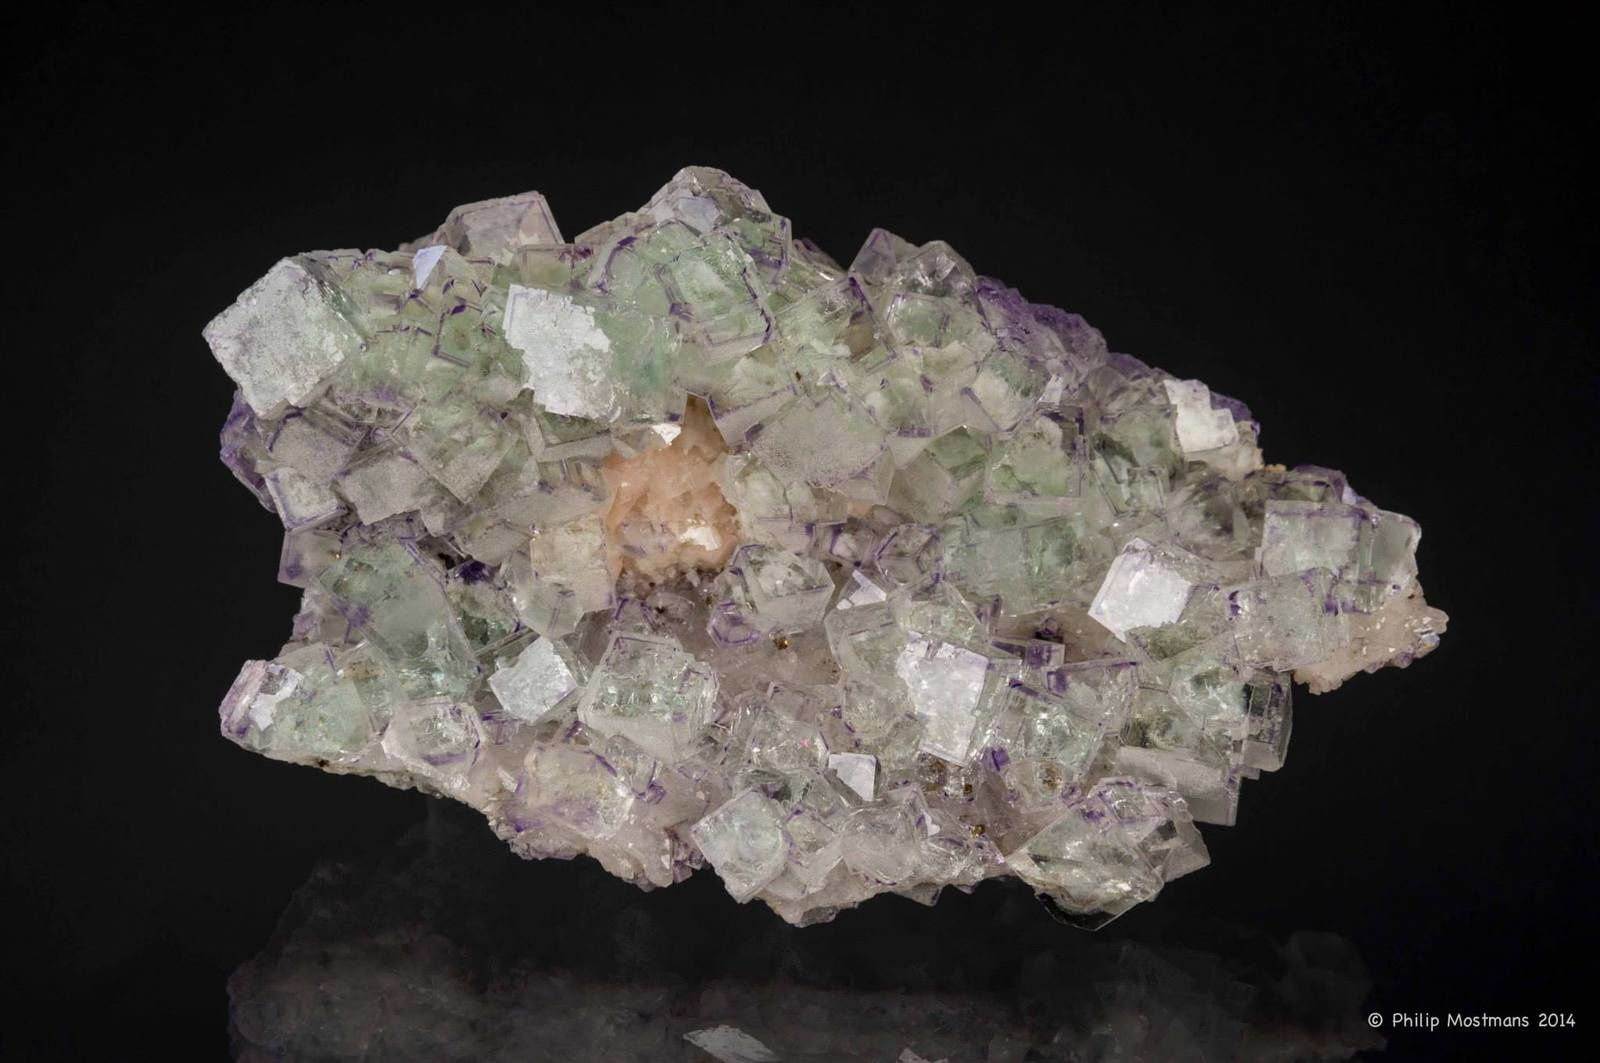 Fluorite Dolomite Chalcopyrite from Shangbao mine, Hunan, China (collection et photo de Philip Mostmans)